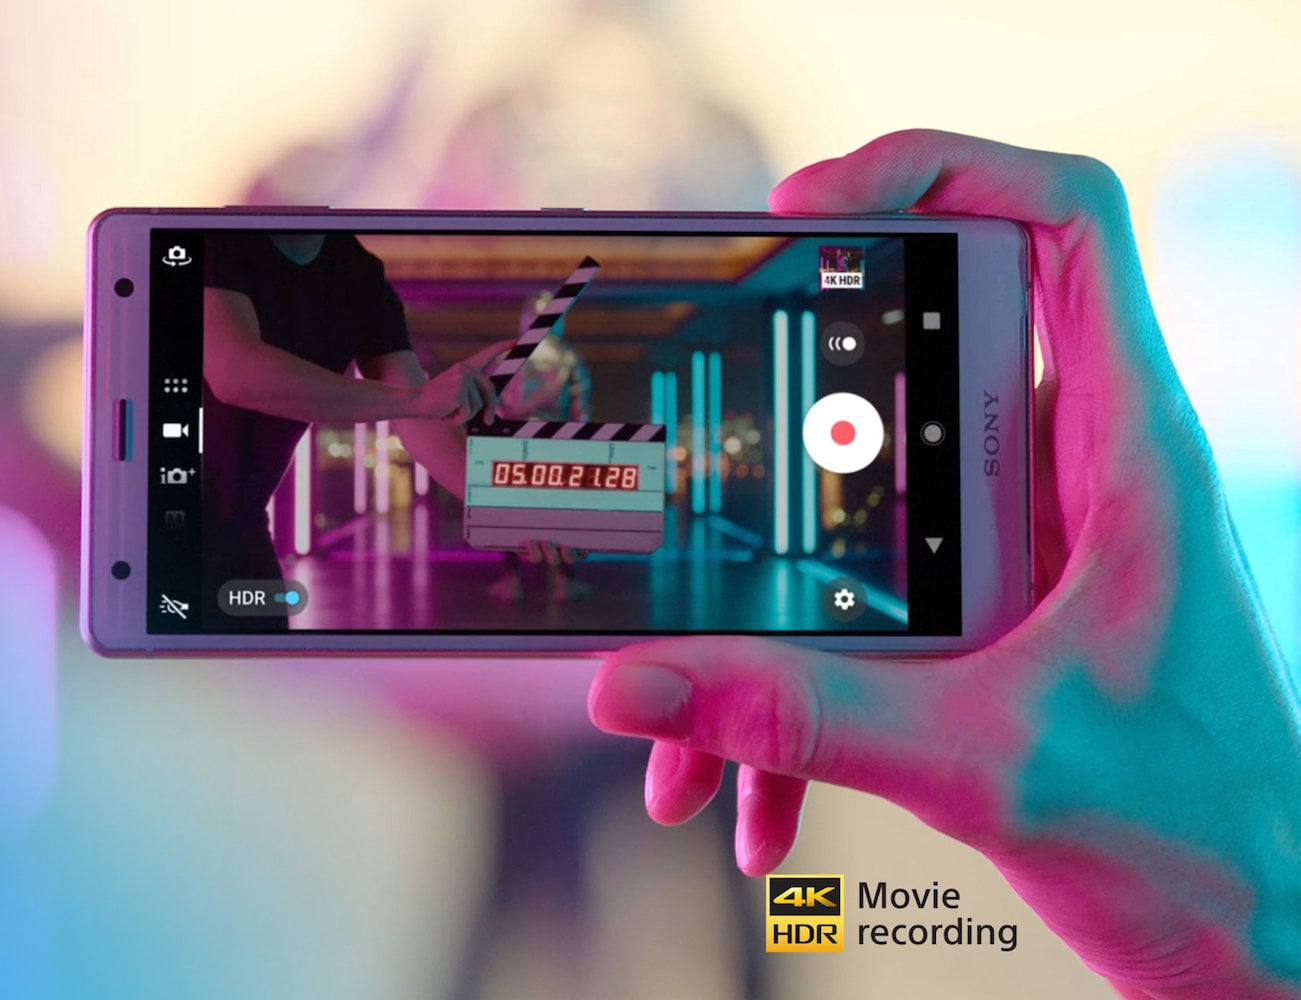 Sony Xperia XZ2 4K HDR Video Smartphone